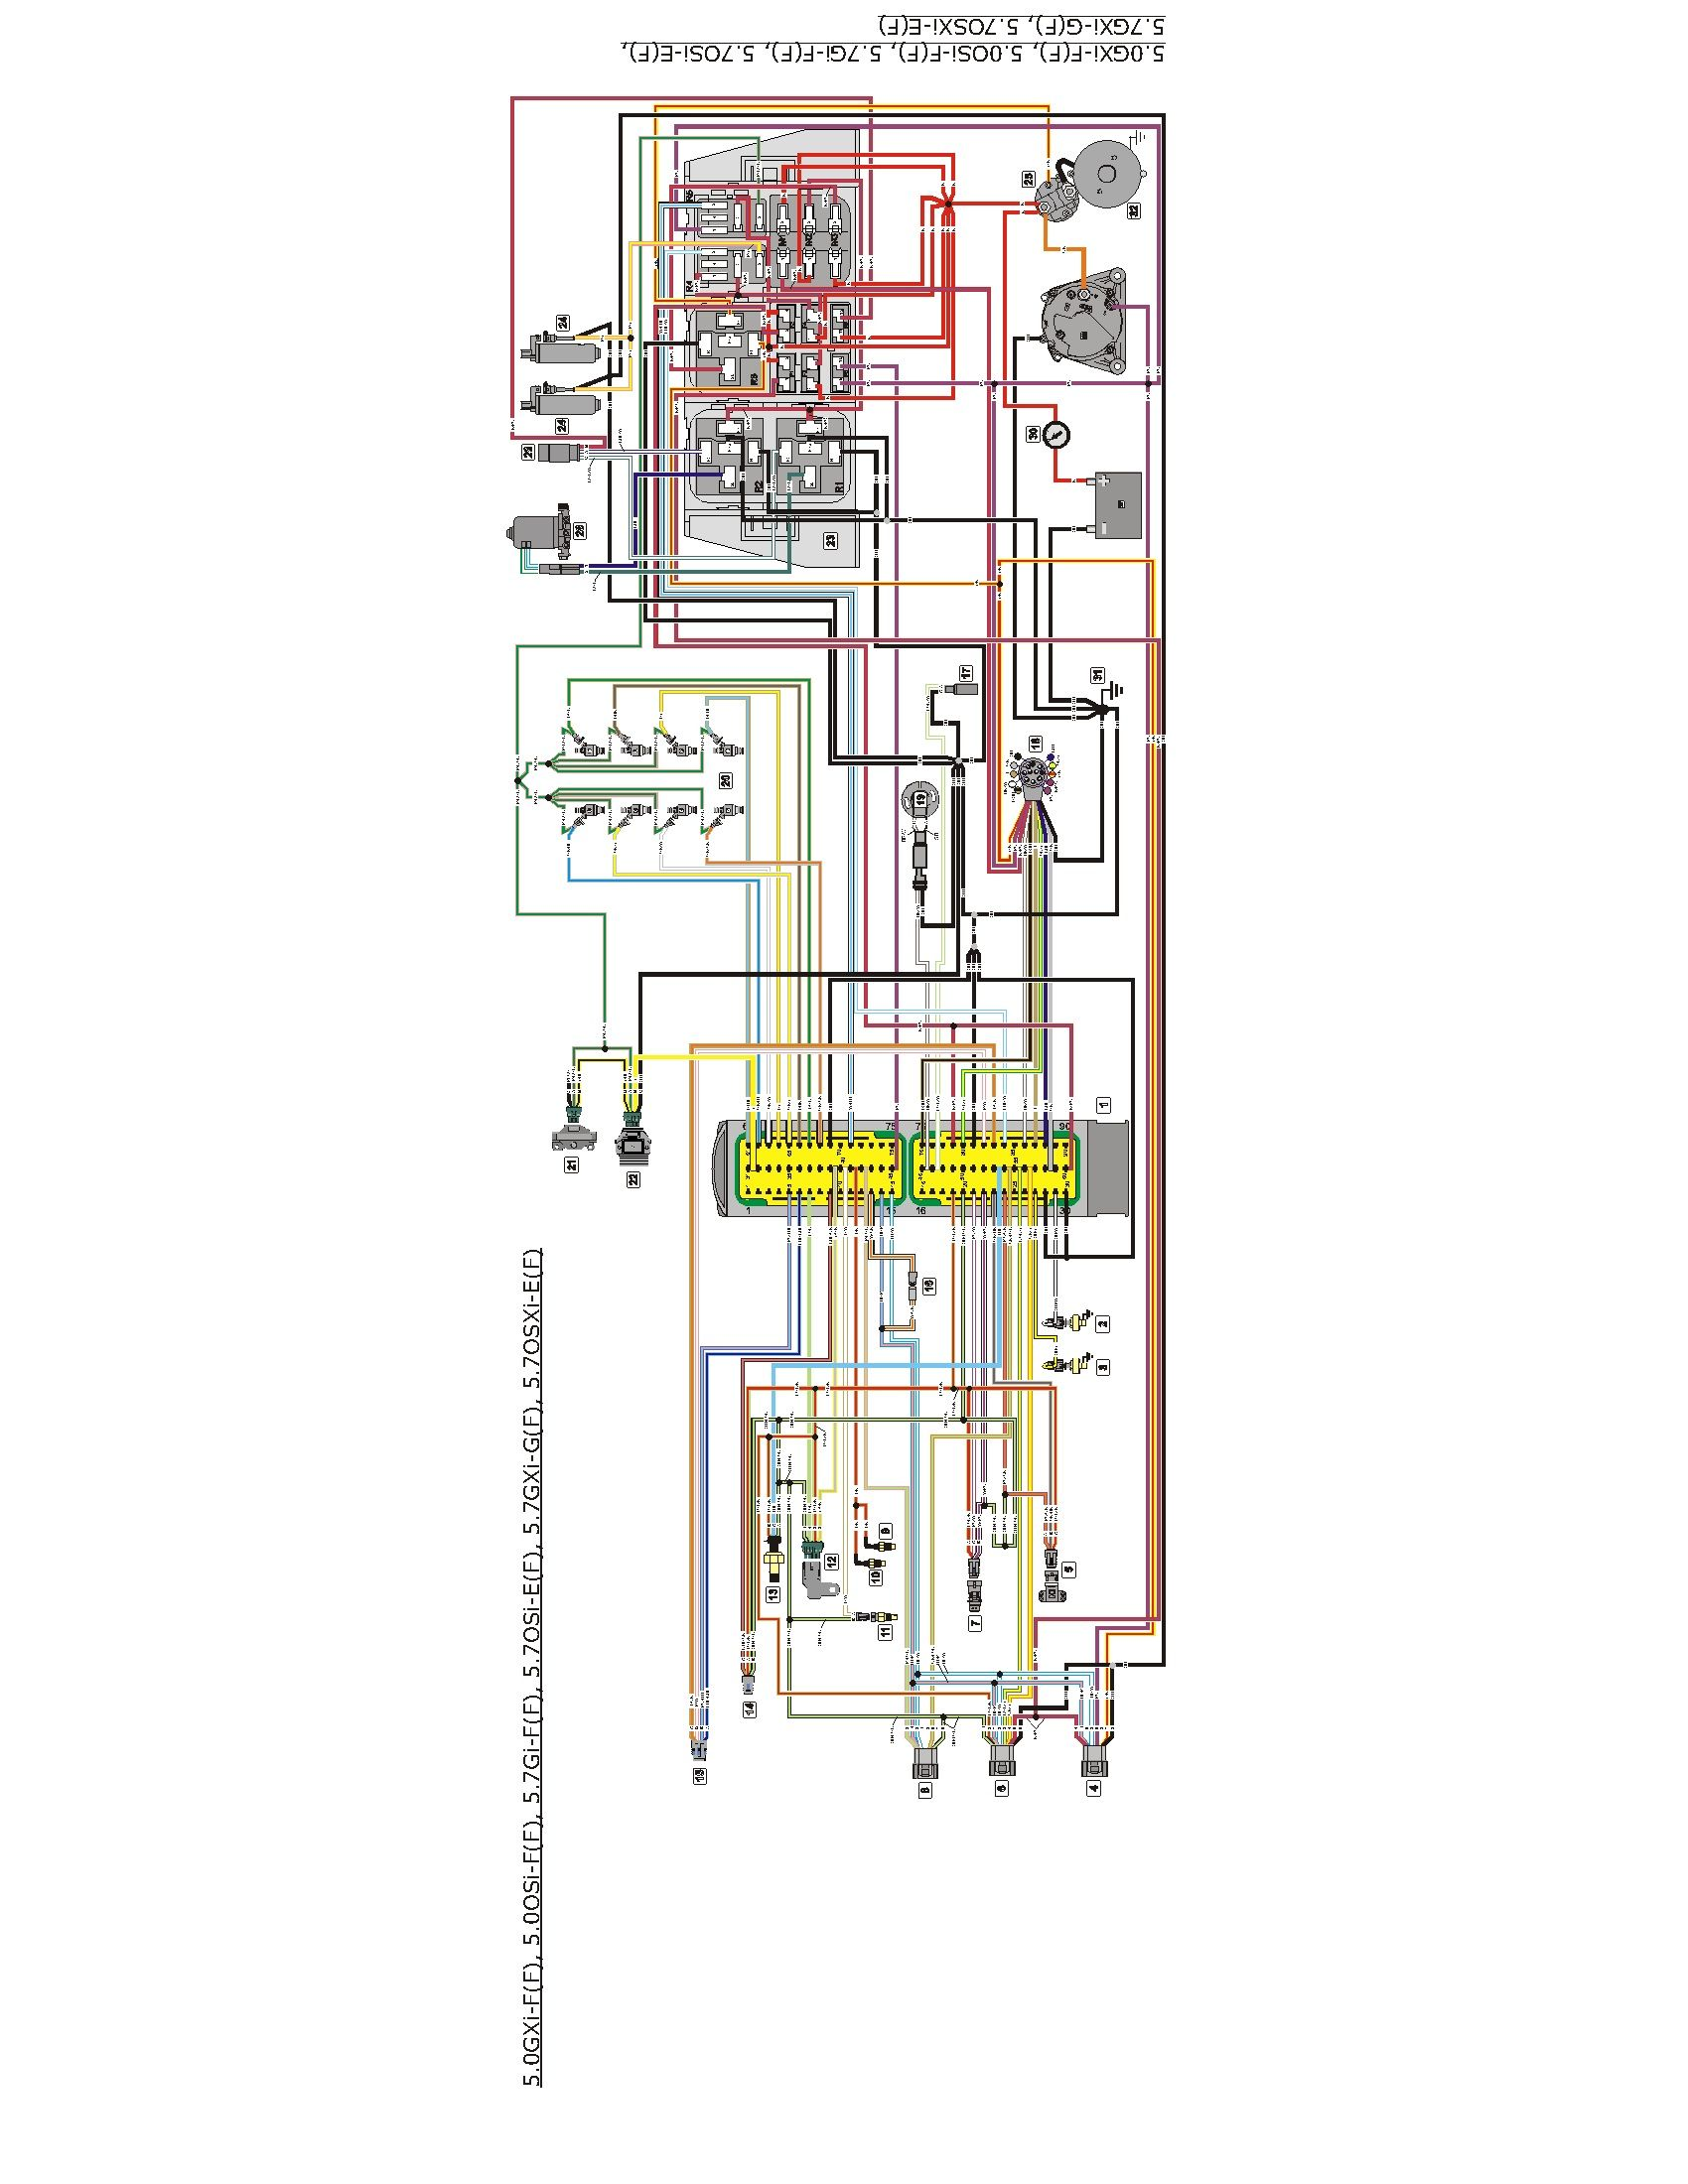 volvo penta 5 7 engine wiring diagram mercury outboard boat engine home design boats [ 1700 x 2200 Pixel ]